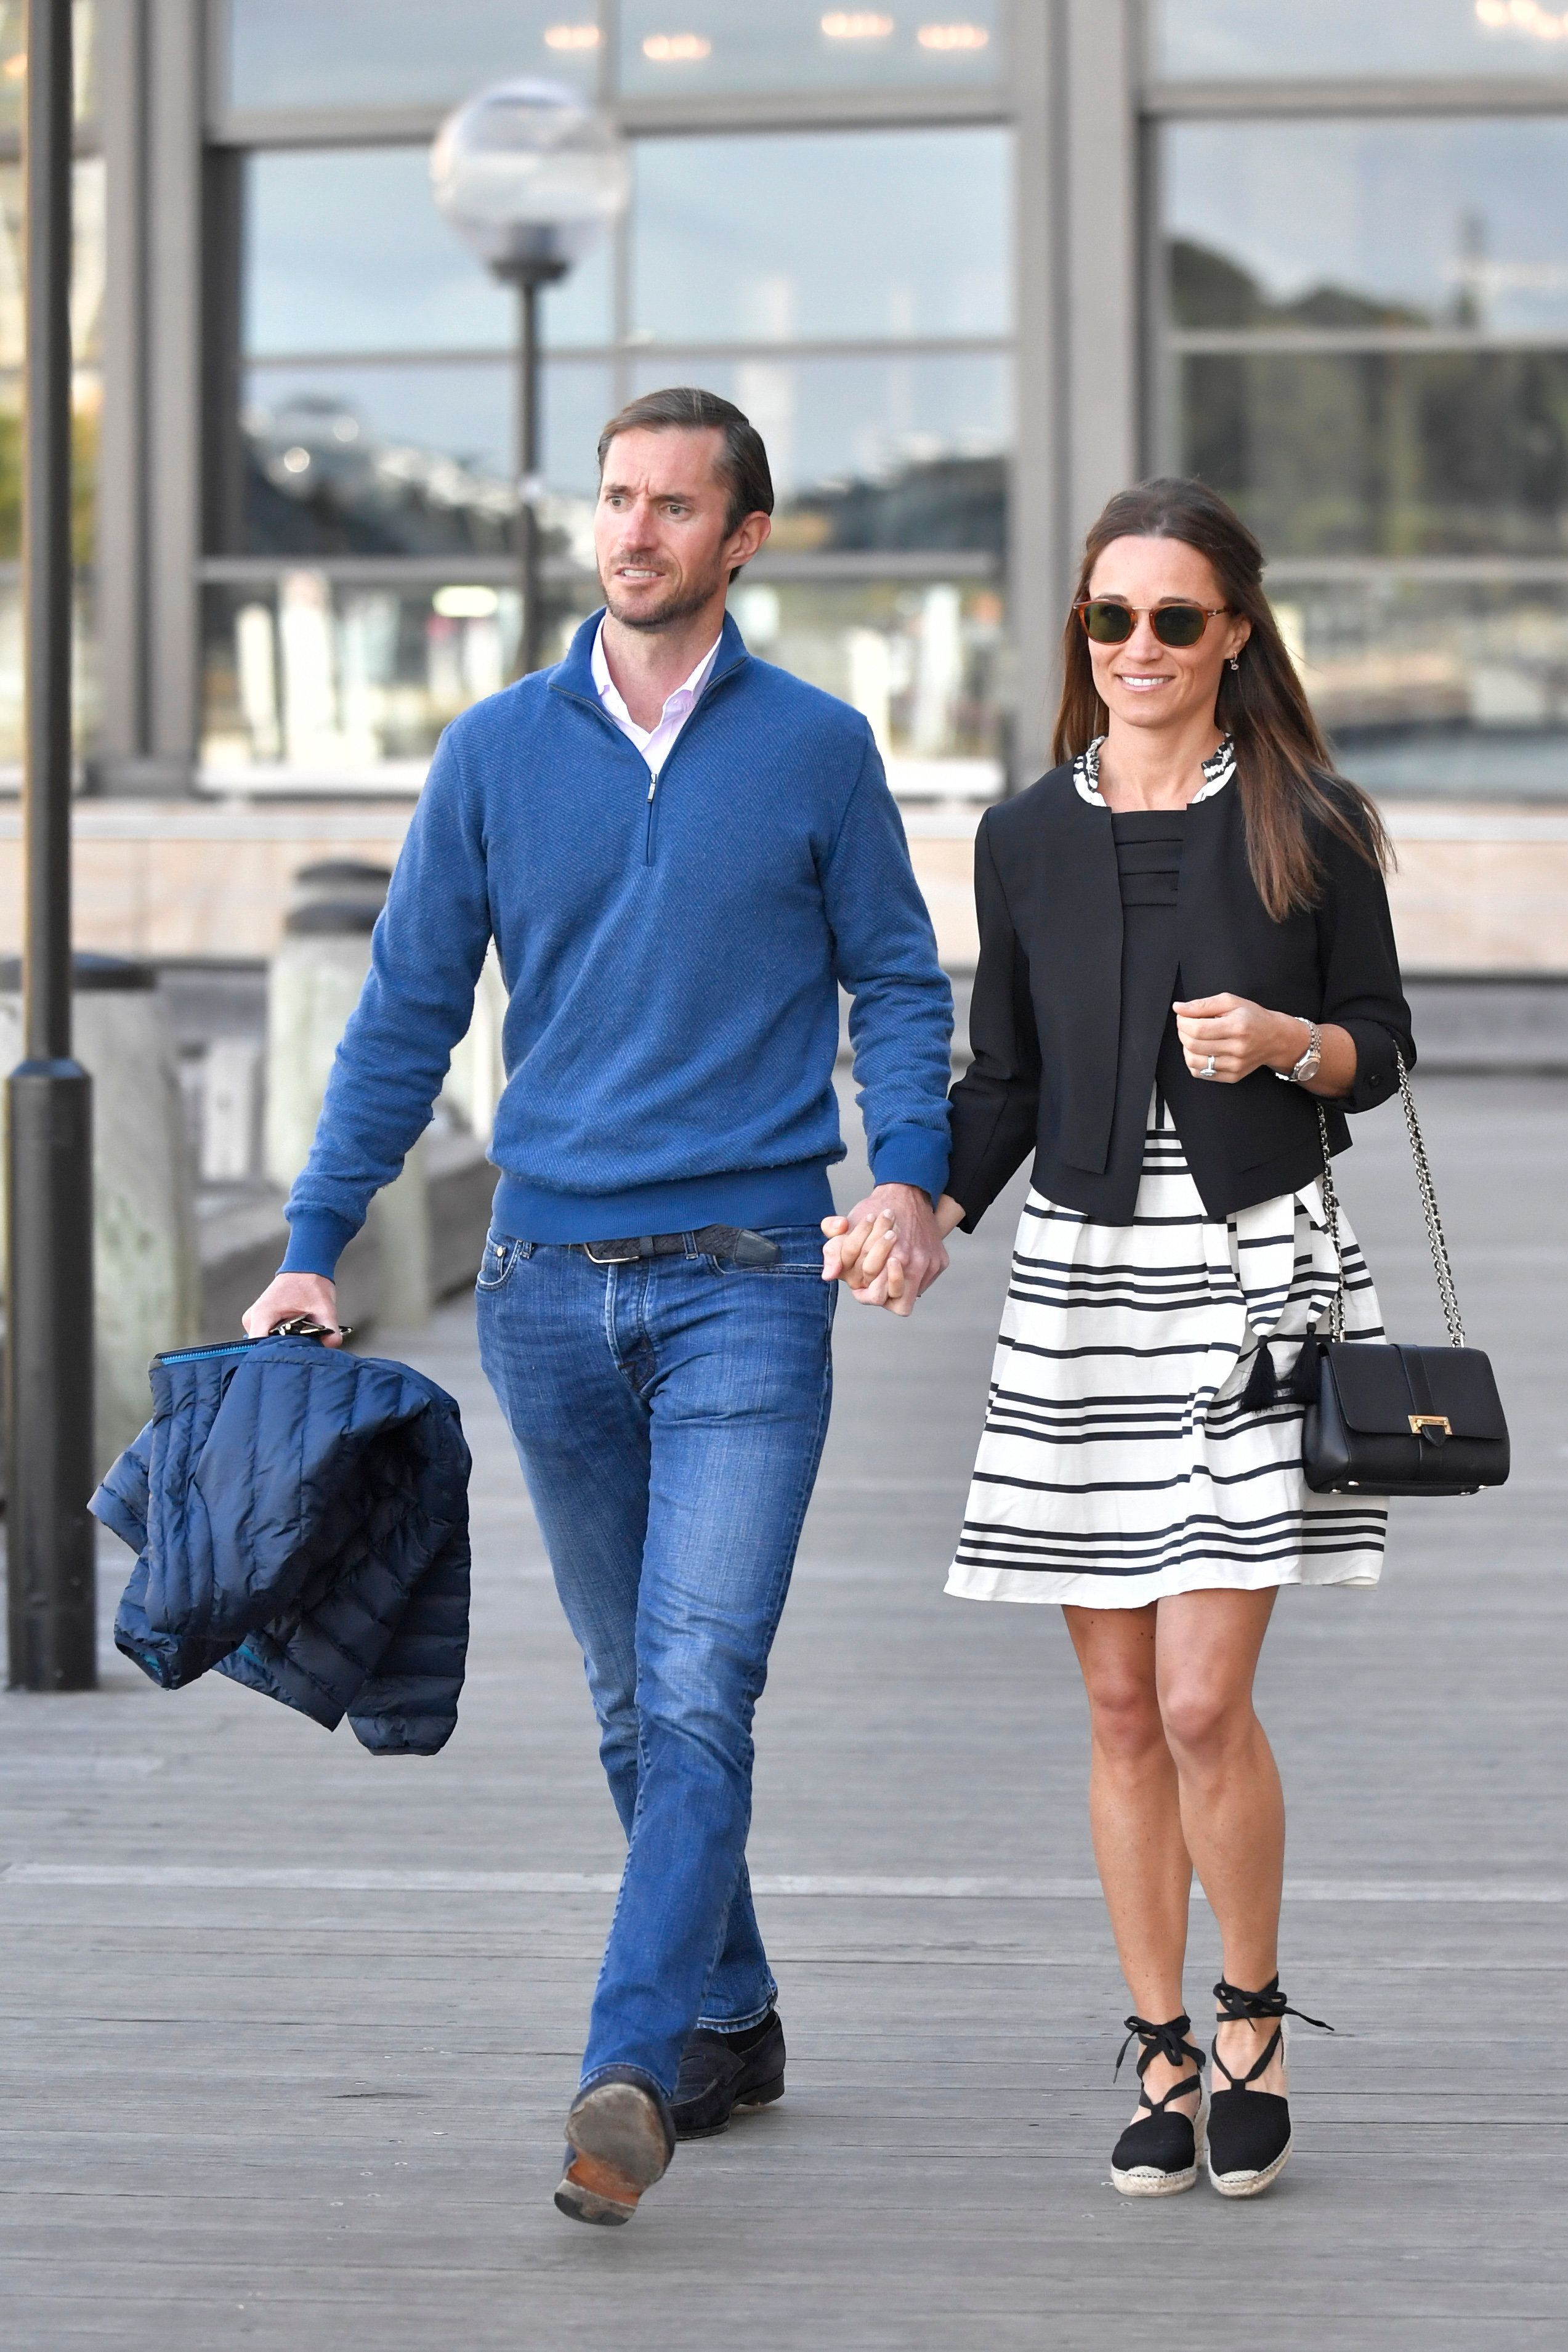 Pippa Middleton and new husband James Matthews are seen getting on a water taxi in Sydney harbour during their honeymoon<P>Pictured: Pippa Middleton and James Matthews<B>Ref: SPL1410918  310517  </B><BR/>Picture by: Splash News<BR/></P><P><B>Splash News and Pictures</B><BR/>Los Angeles:310-821-2666<BR/>New York:212-619-2666<BR/>London:870-934-2666<BR/>photodesk@splashnews.com<BR/></P>